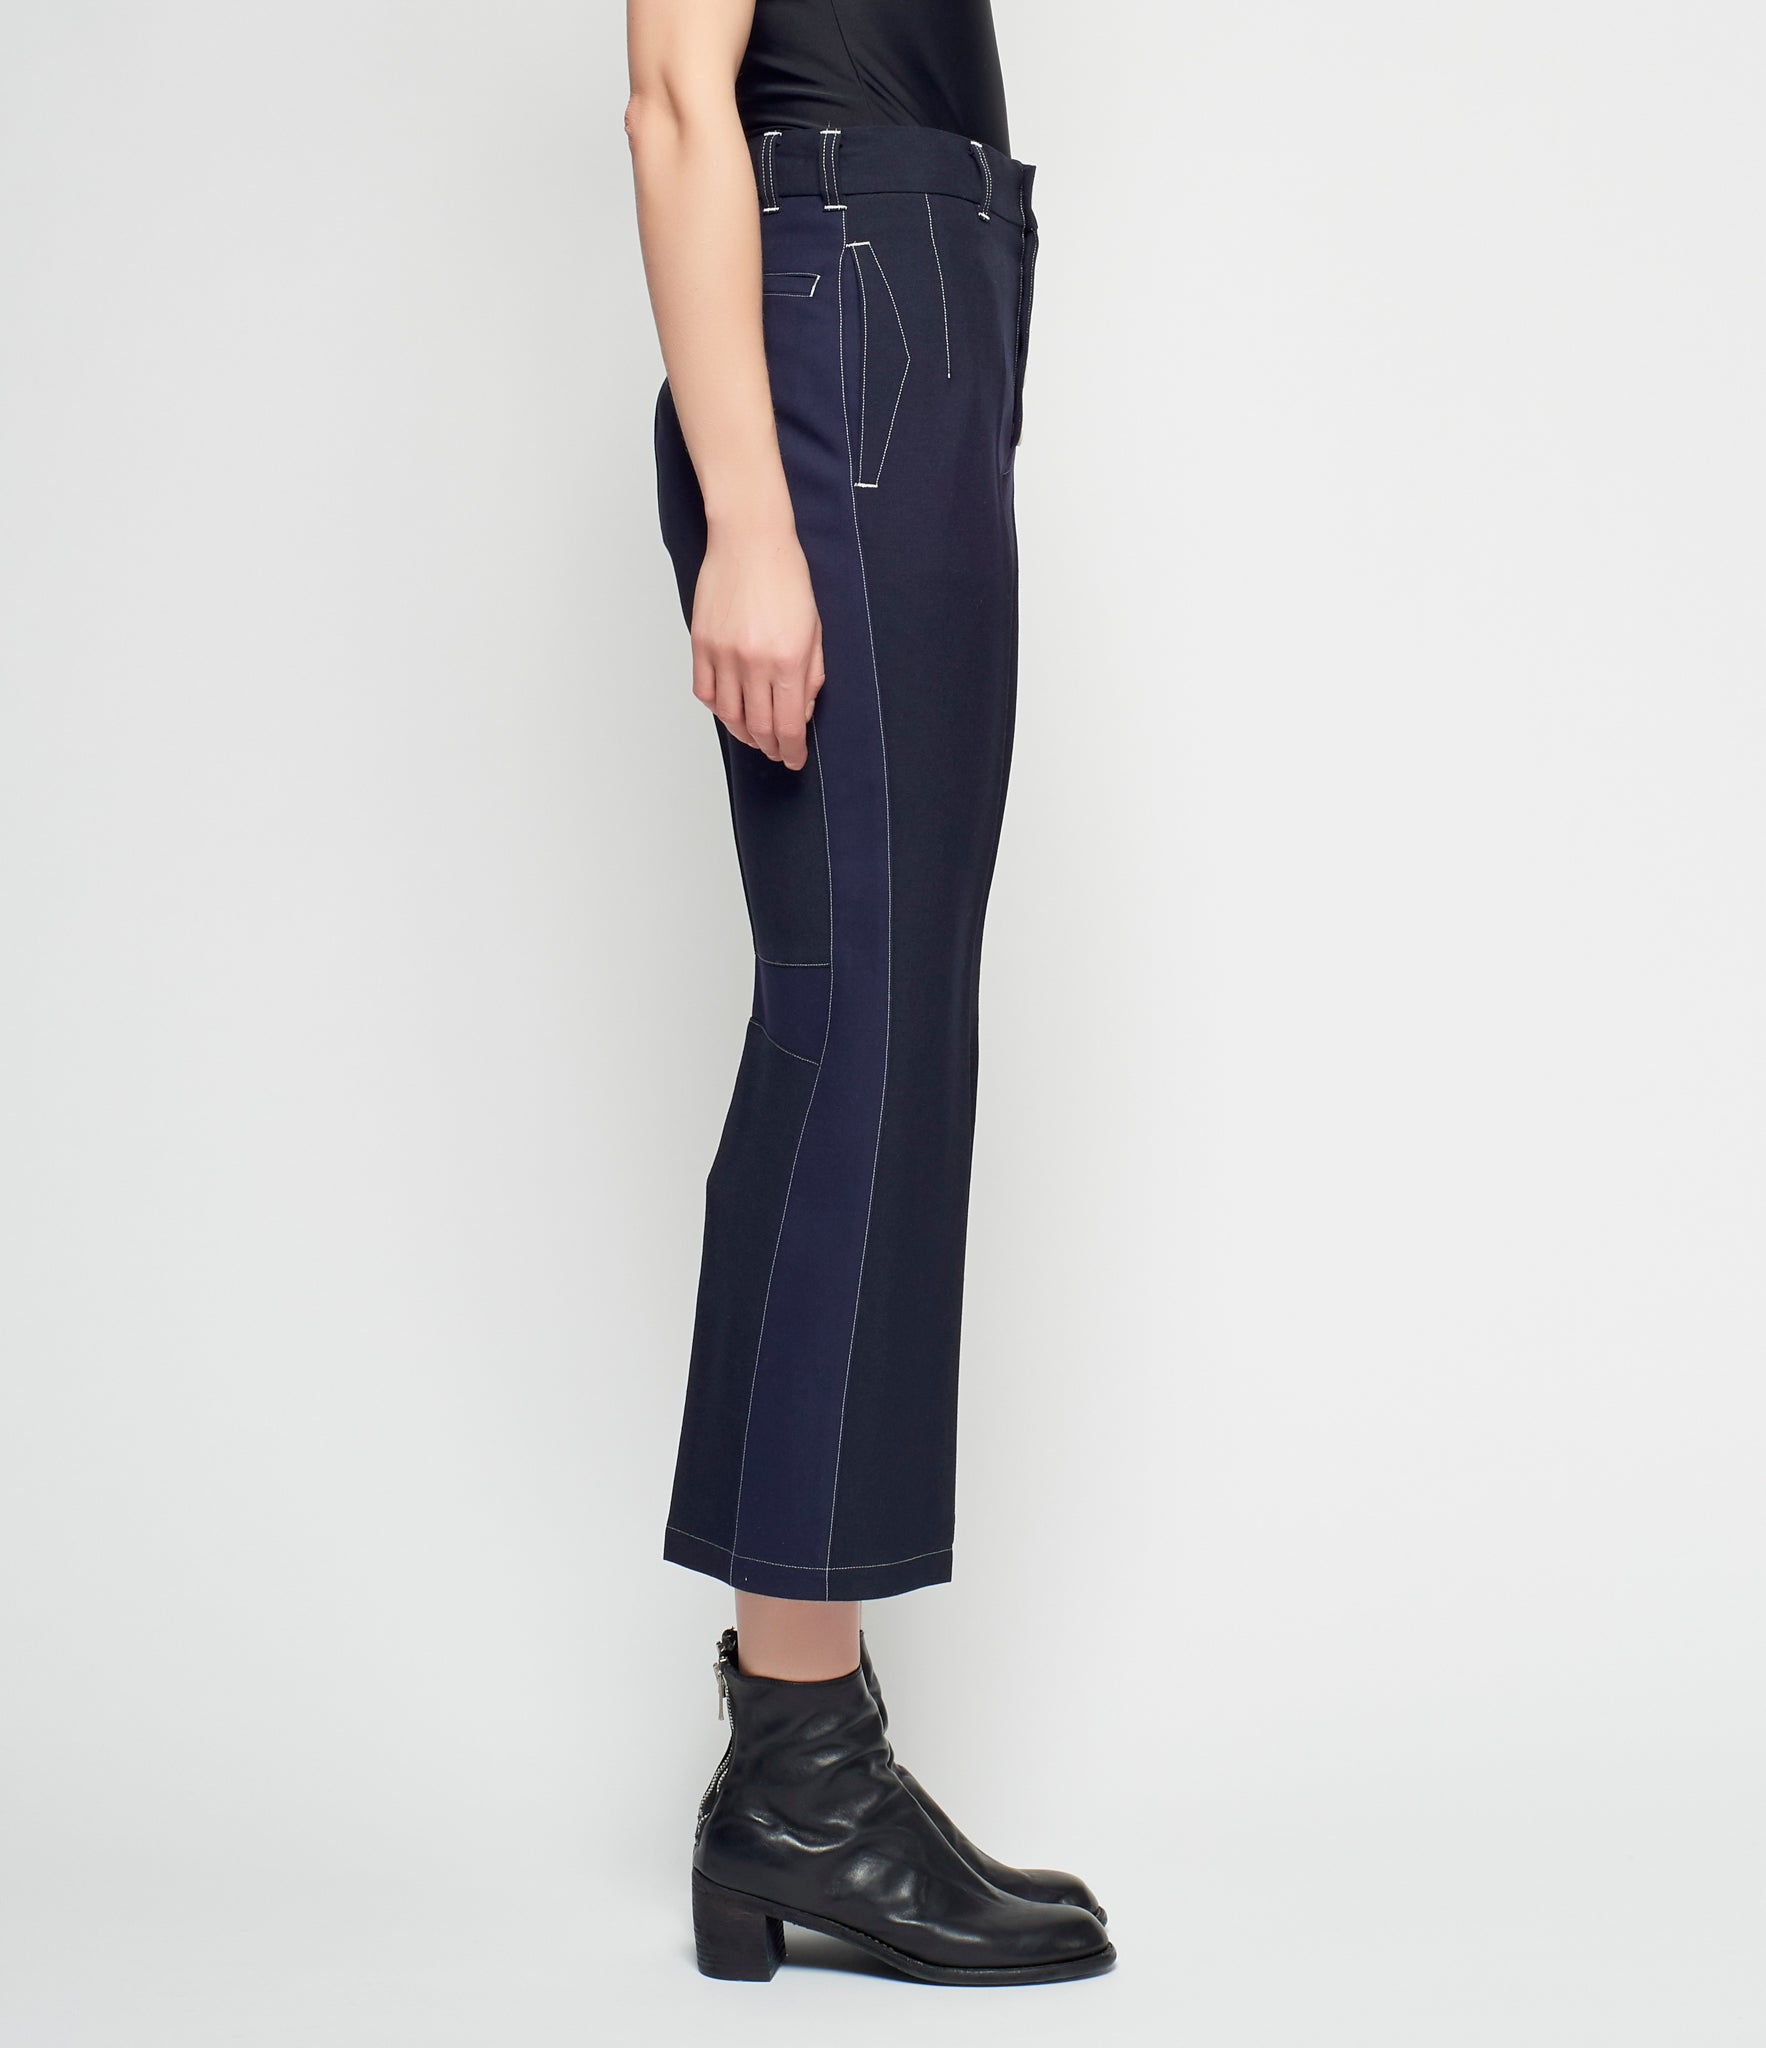 Shiro Sakai Tropical Wool Trousers